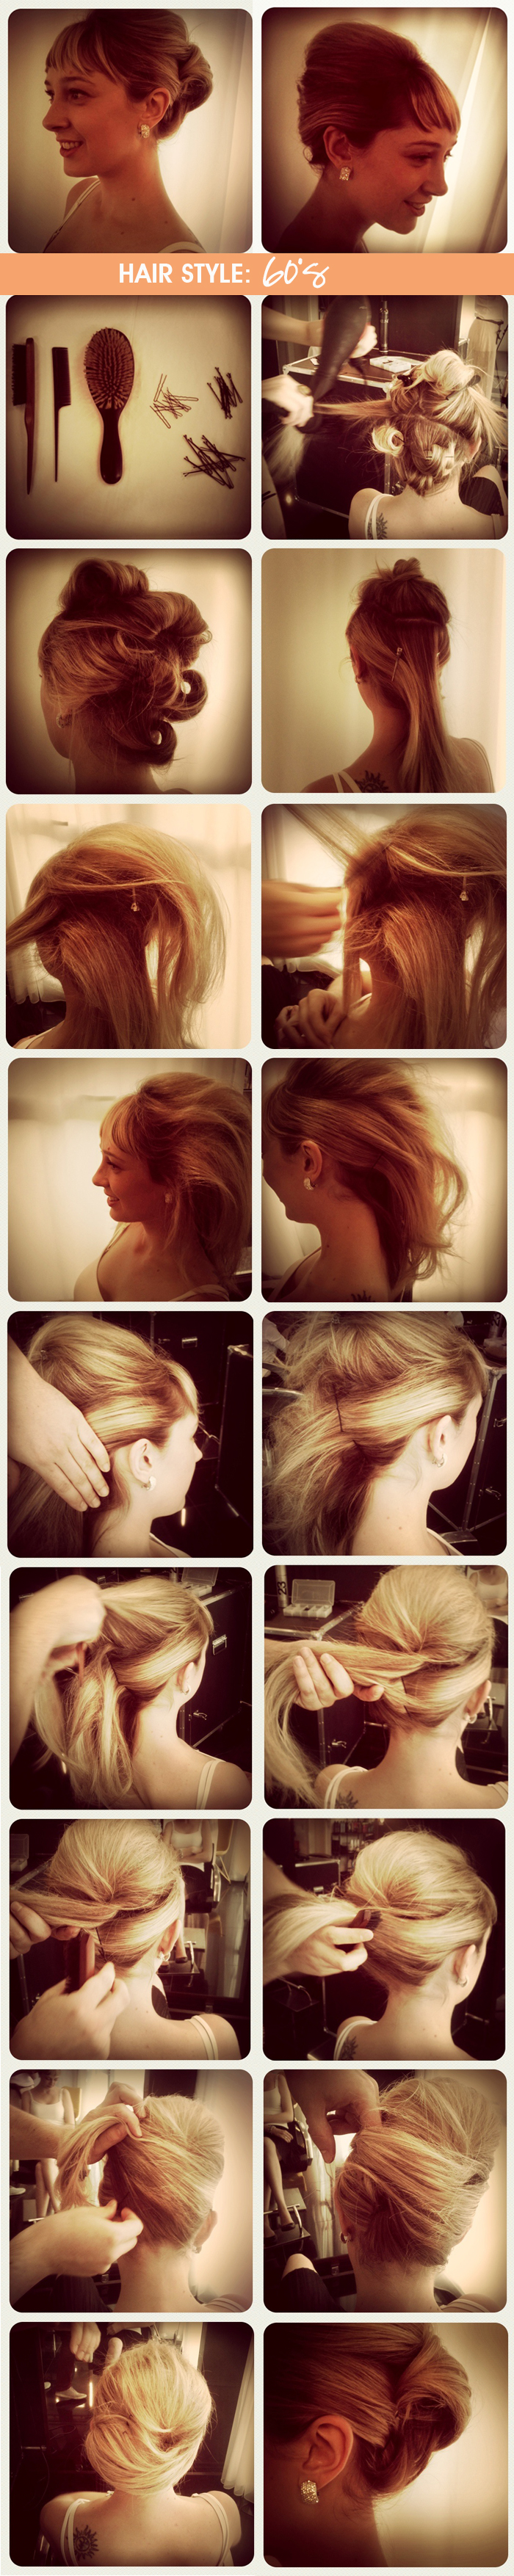 how to hair style coque anos 60 Dica de Beauté blog MeninaIT